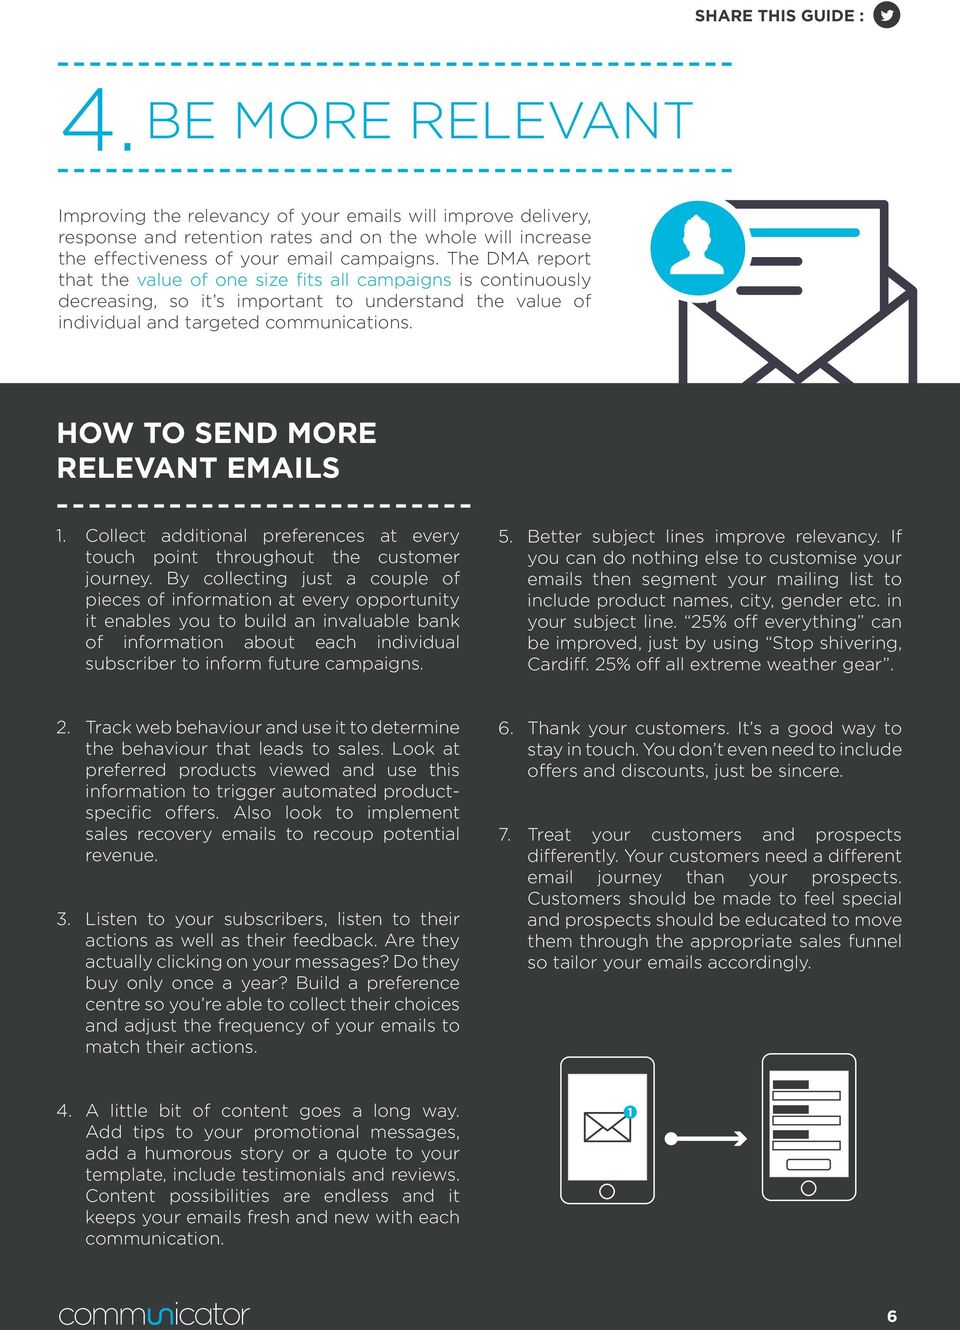 HOW TO SEND MORE RELEVANT EMAILS 1. Collect additional preferences at every touch point throughout the customer journey.